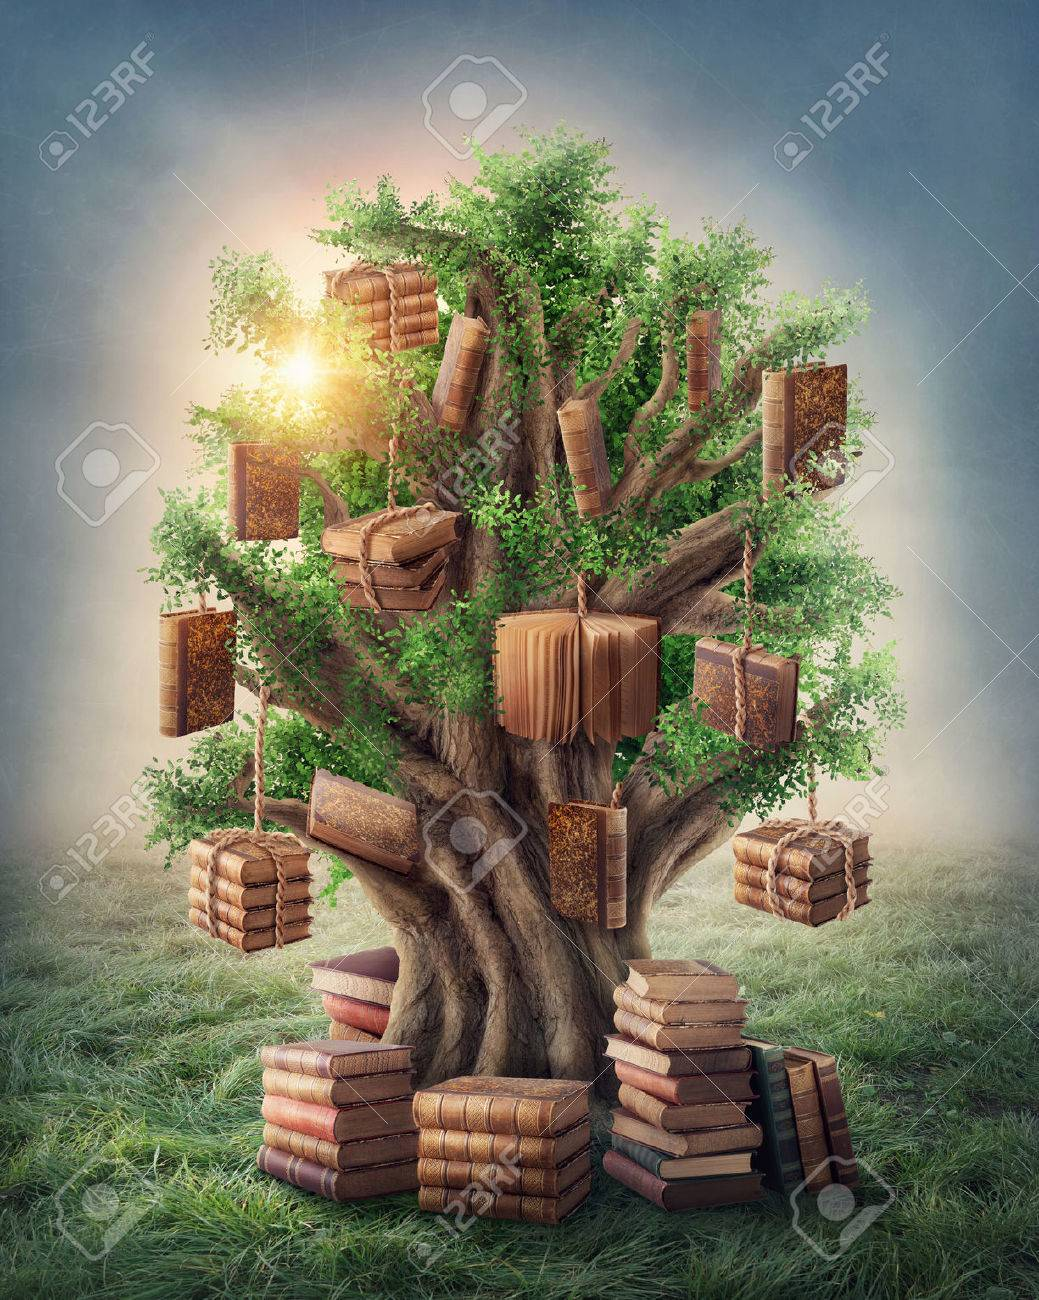 Tree of knowledge in the meadow Stock Photo - 32756198